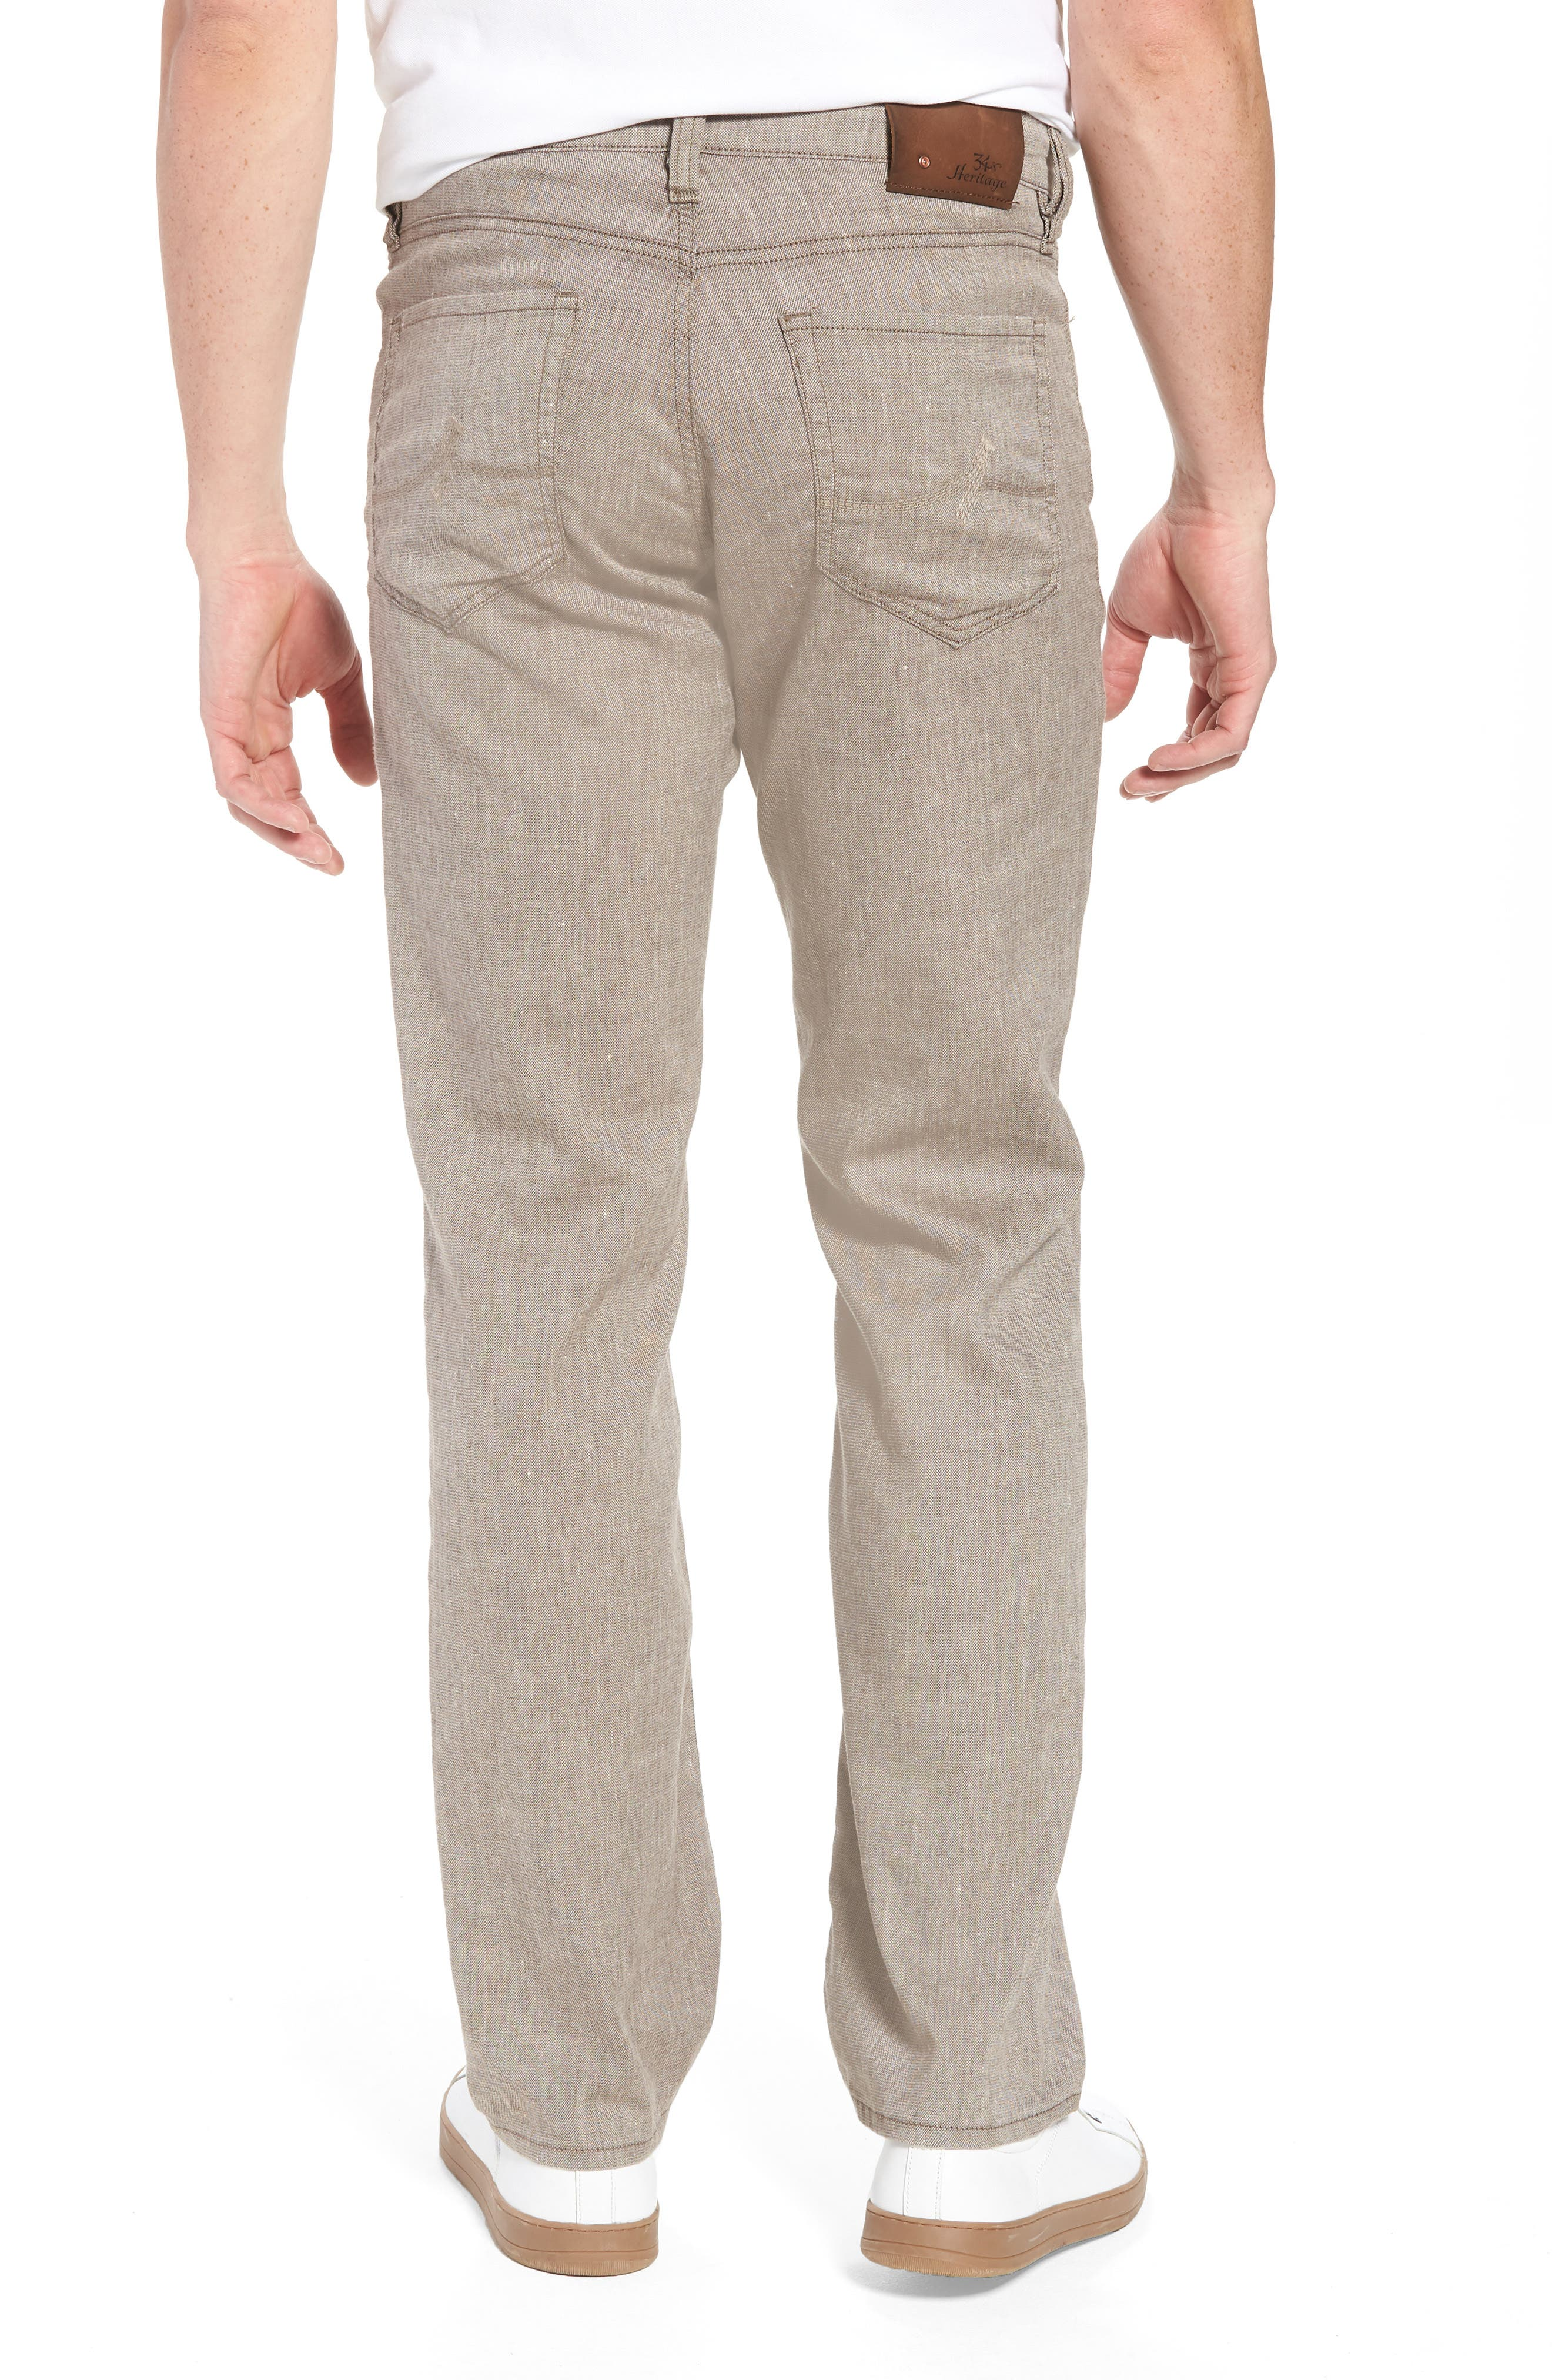 Charisma Relaxed Fit Pants,                             Alternate thumbnail 2, color,                             Latte Textured